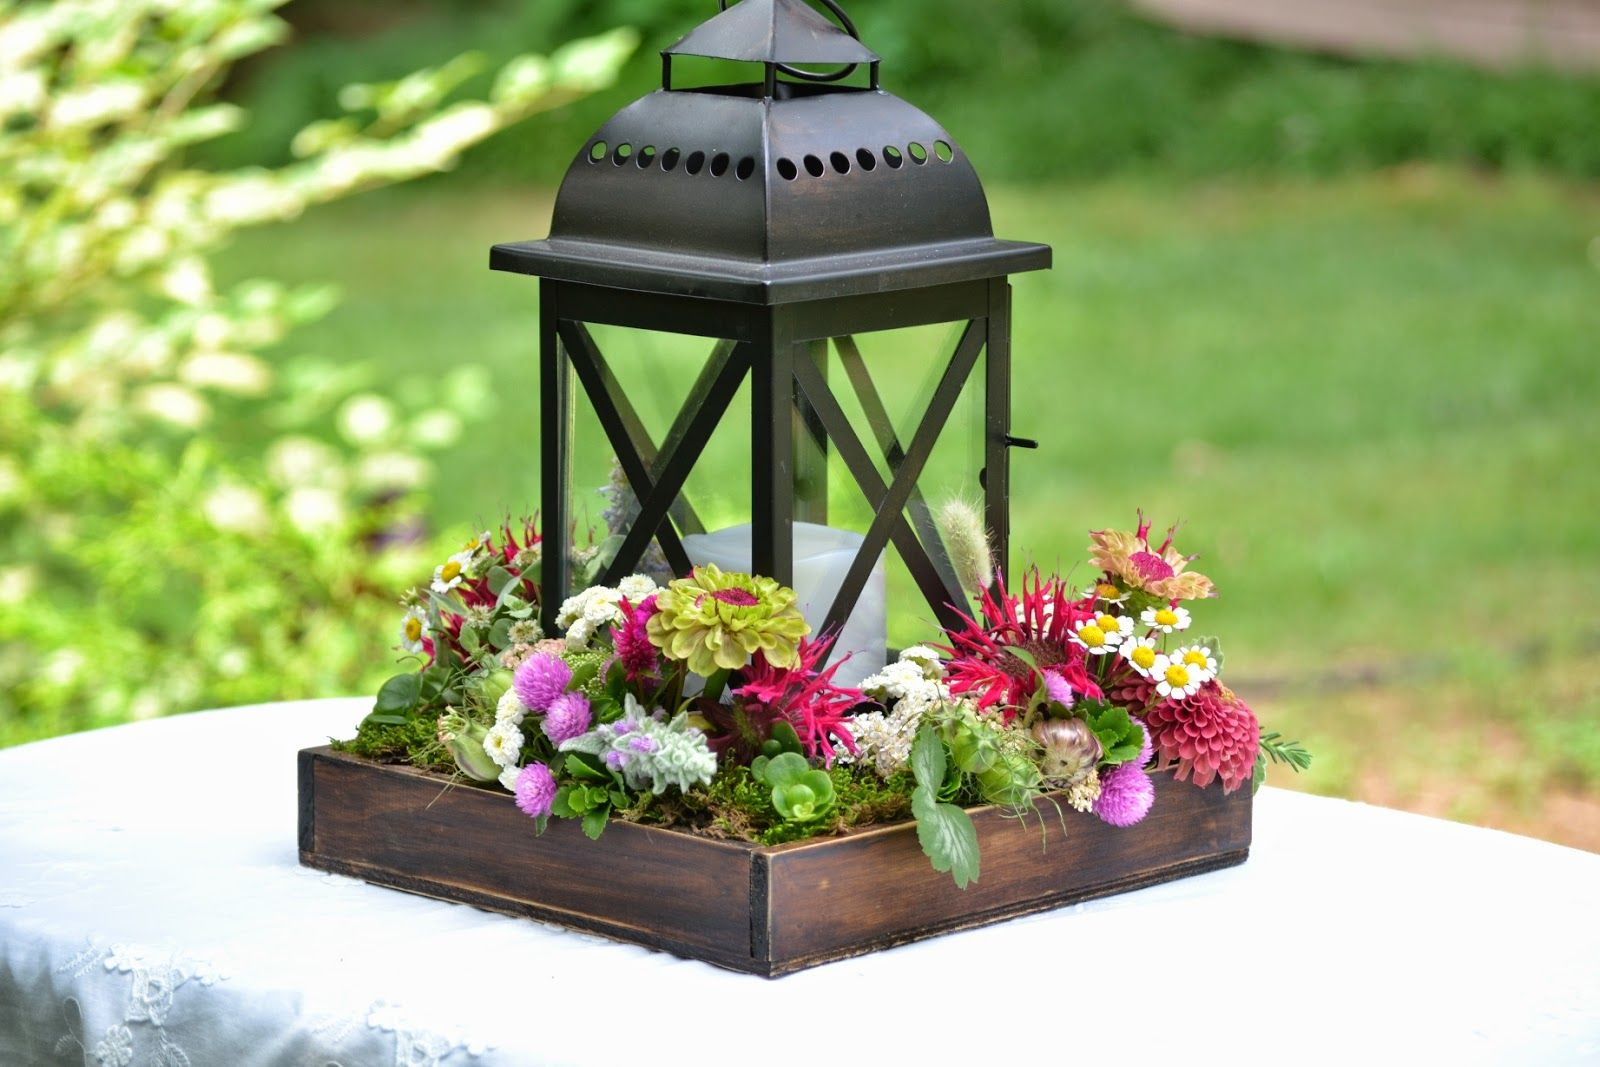 Flowers Lantern Centerpiece : This is quite pretty a lantern sitting inside low